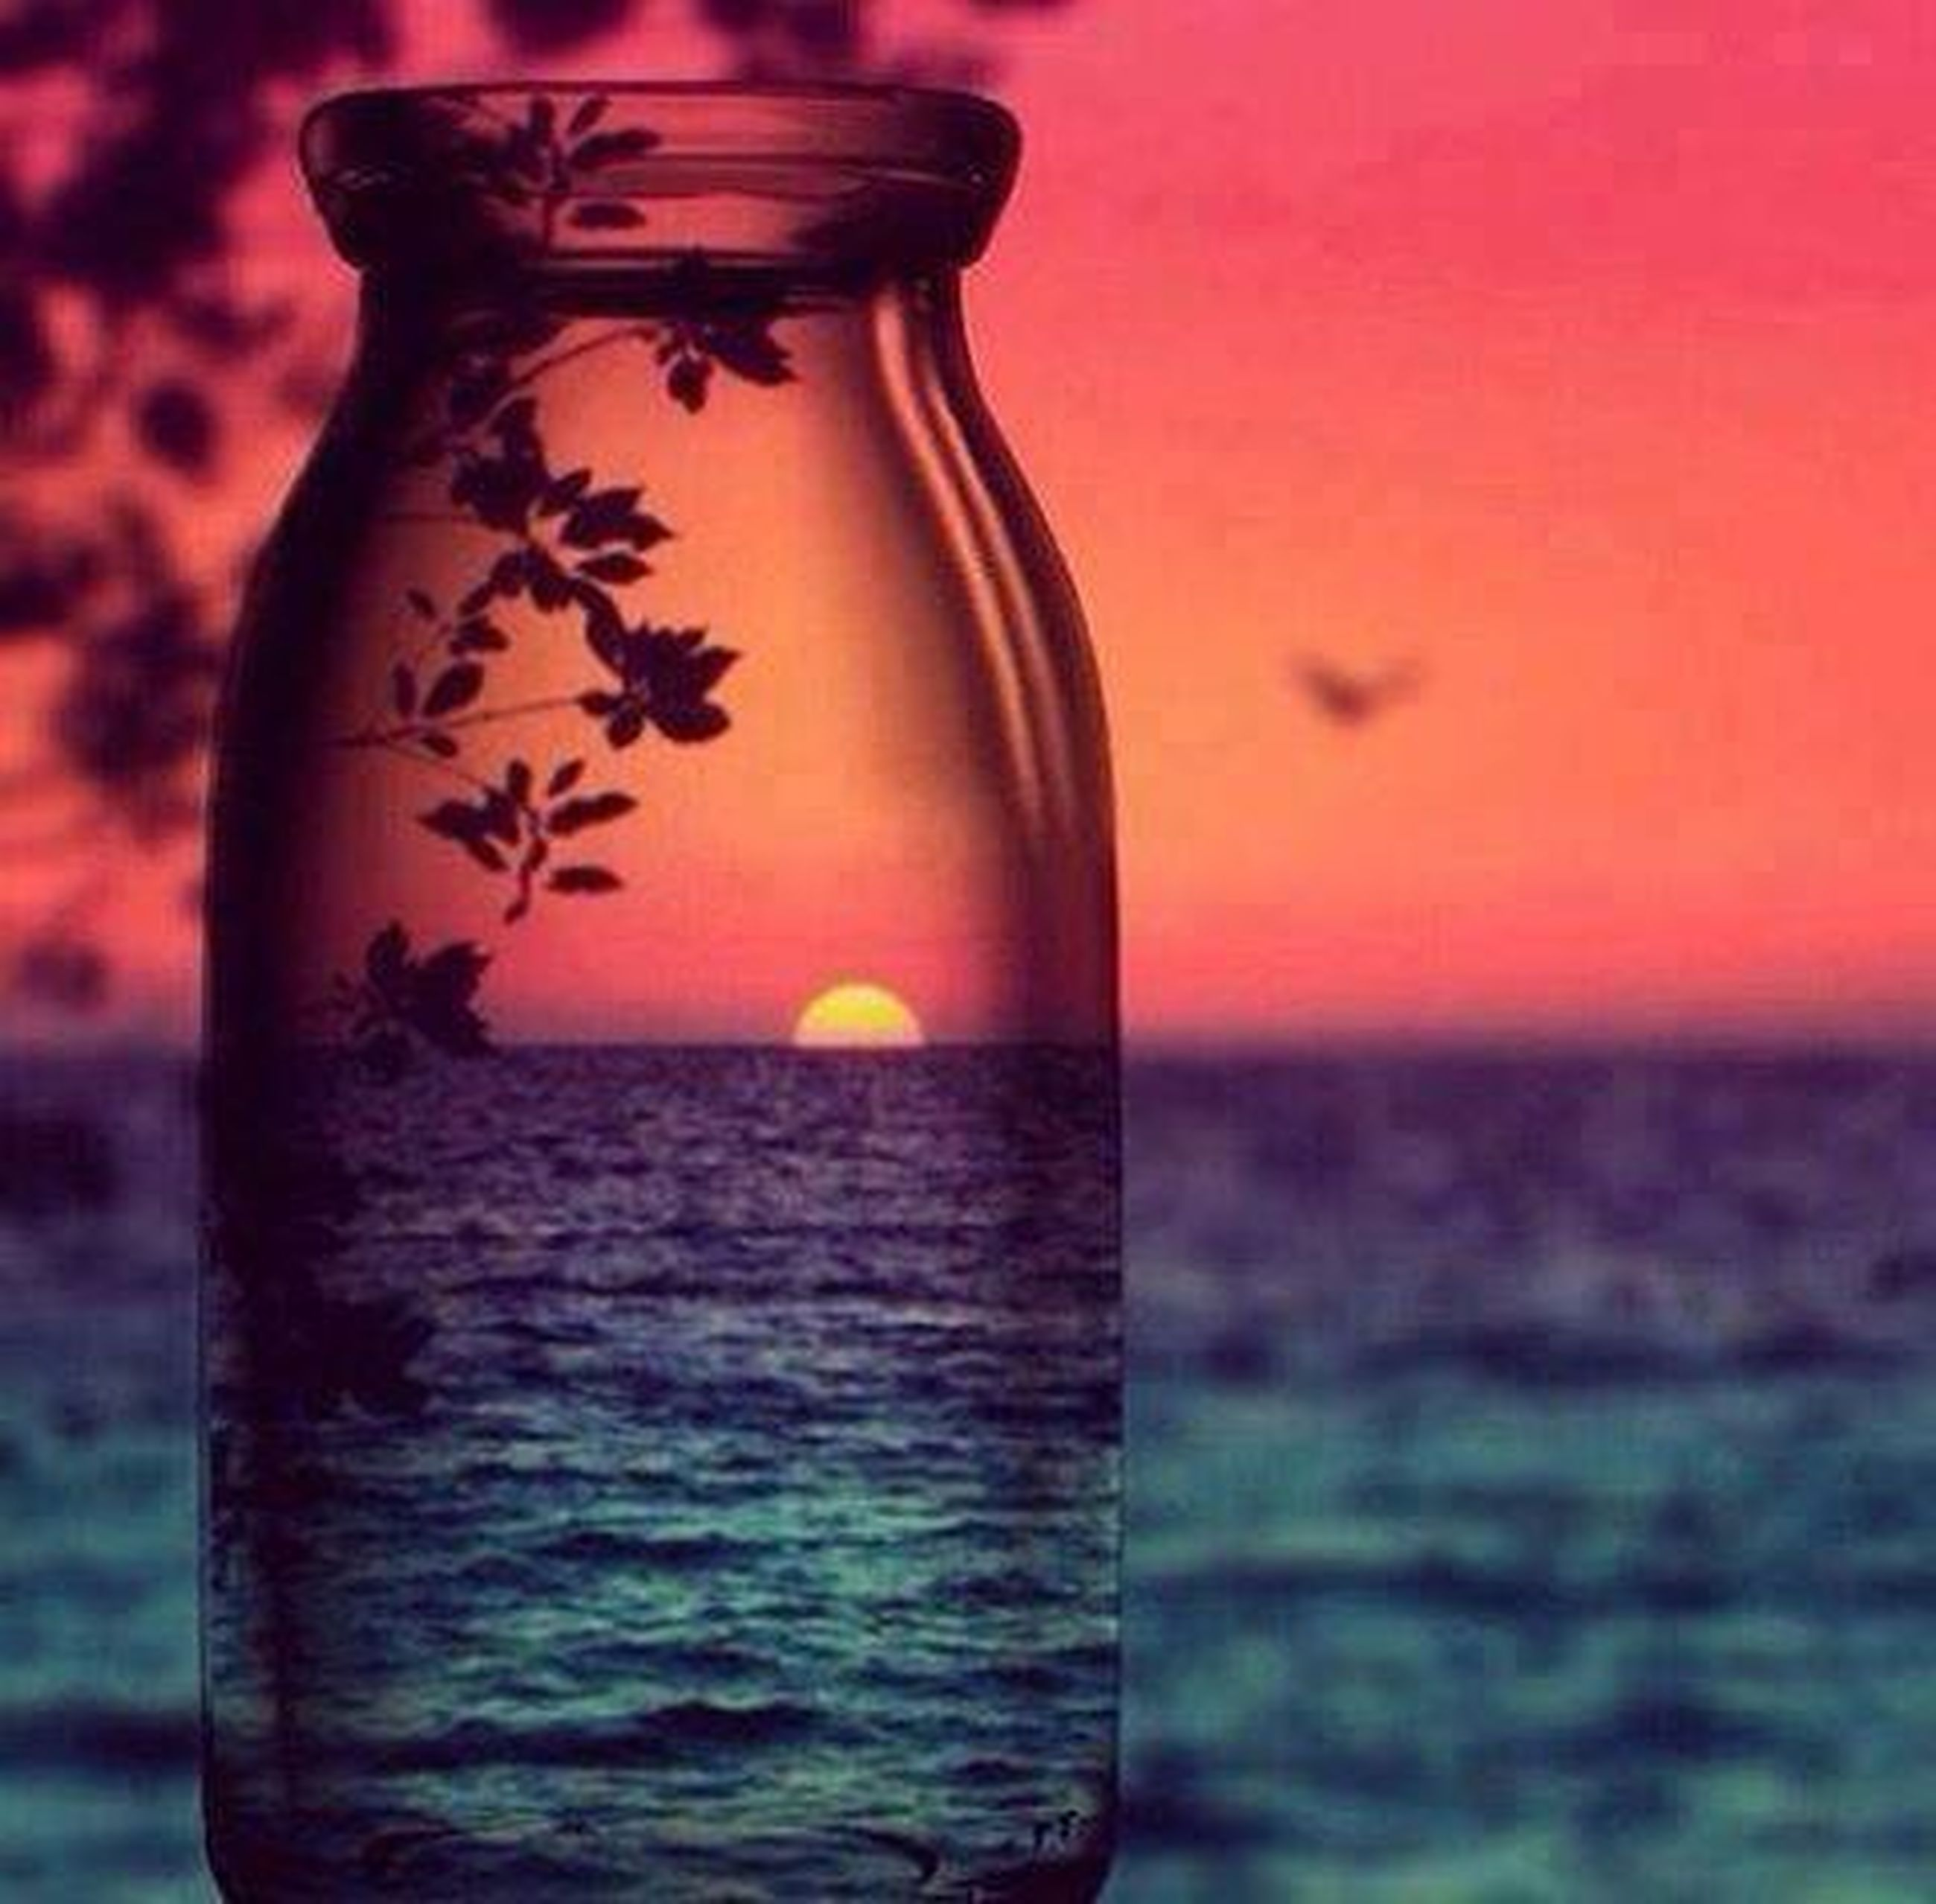 water, sea, sunset, close-up, focus on foreground, orange color, waterfront, single object, red, horizon over water, reflection, rippled, nature, no people, beauty in nature, tranquility, refreshment, drink, outdoors, scenics